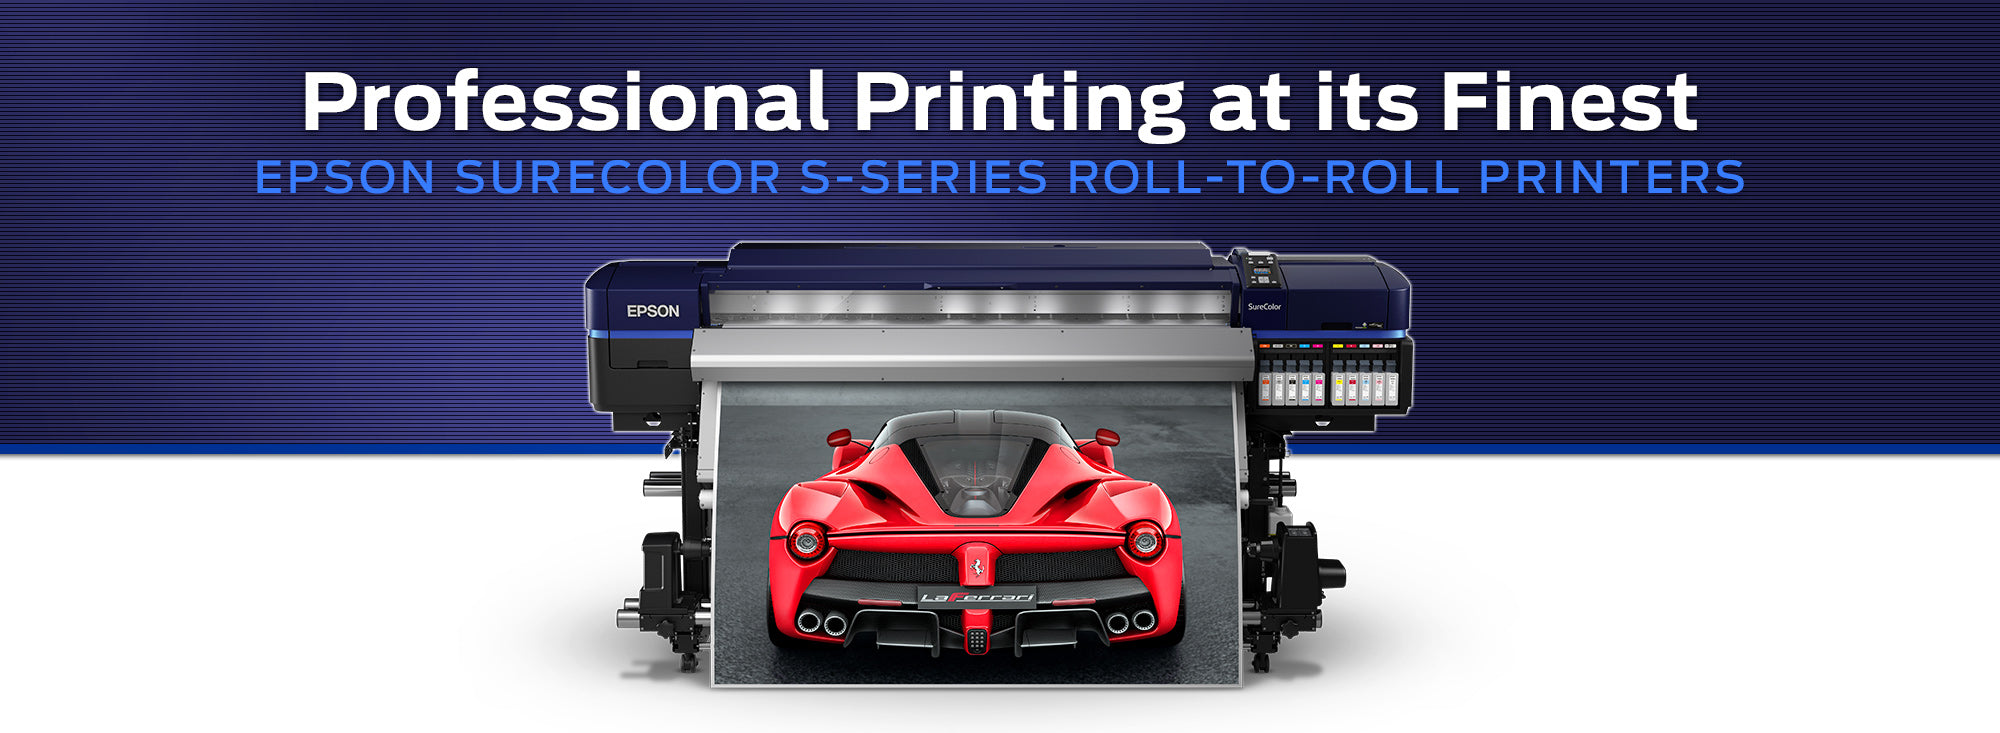 Epson SureColor S-Series Roll-to-Roll Sign Printer